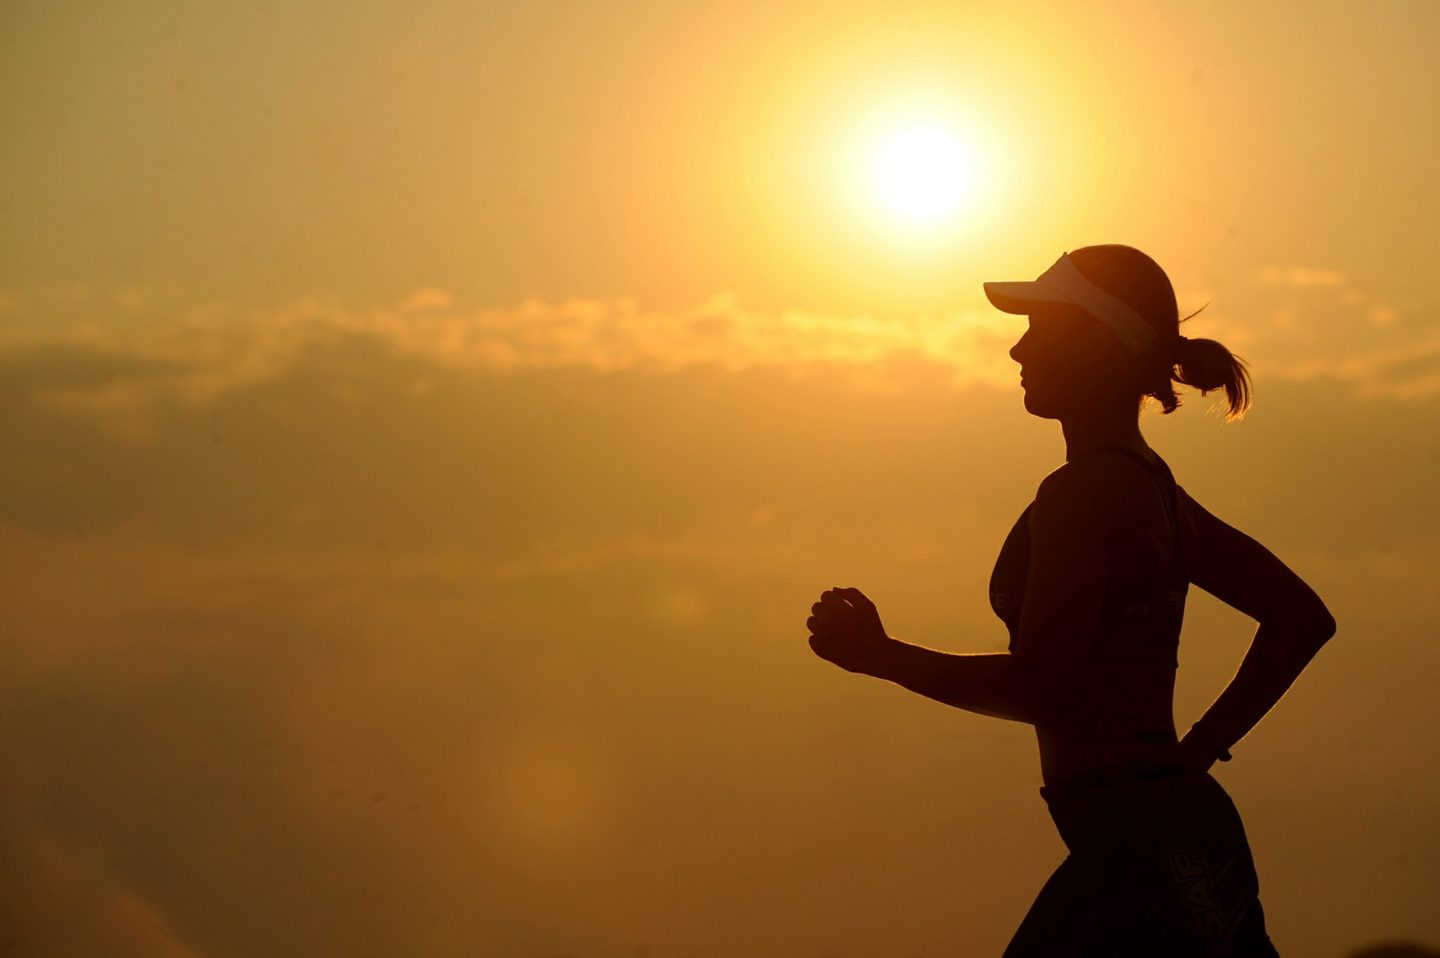 Turn Your Love Of Fitness Into A Rewarding Career